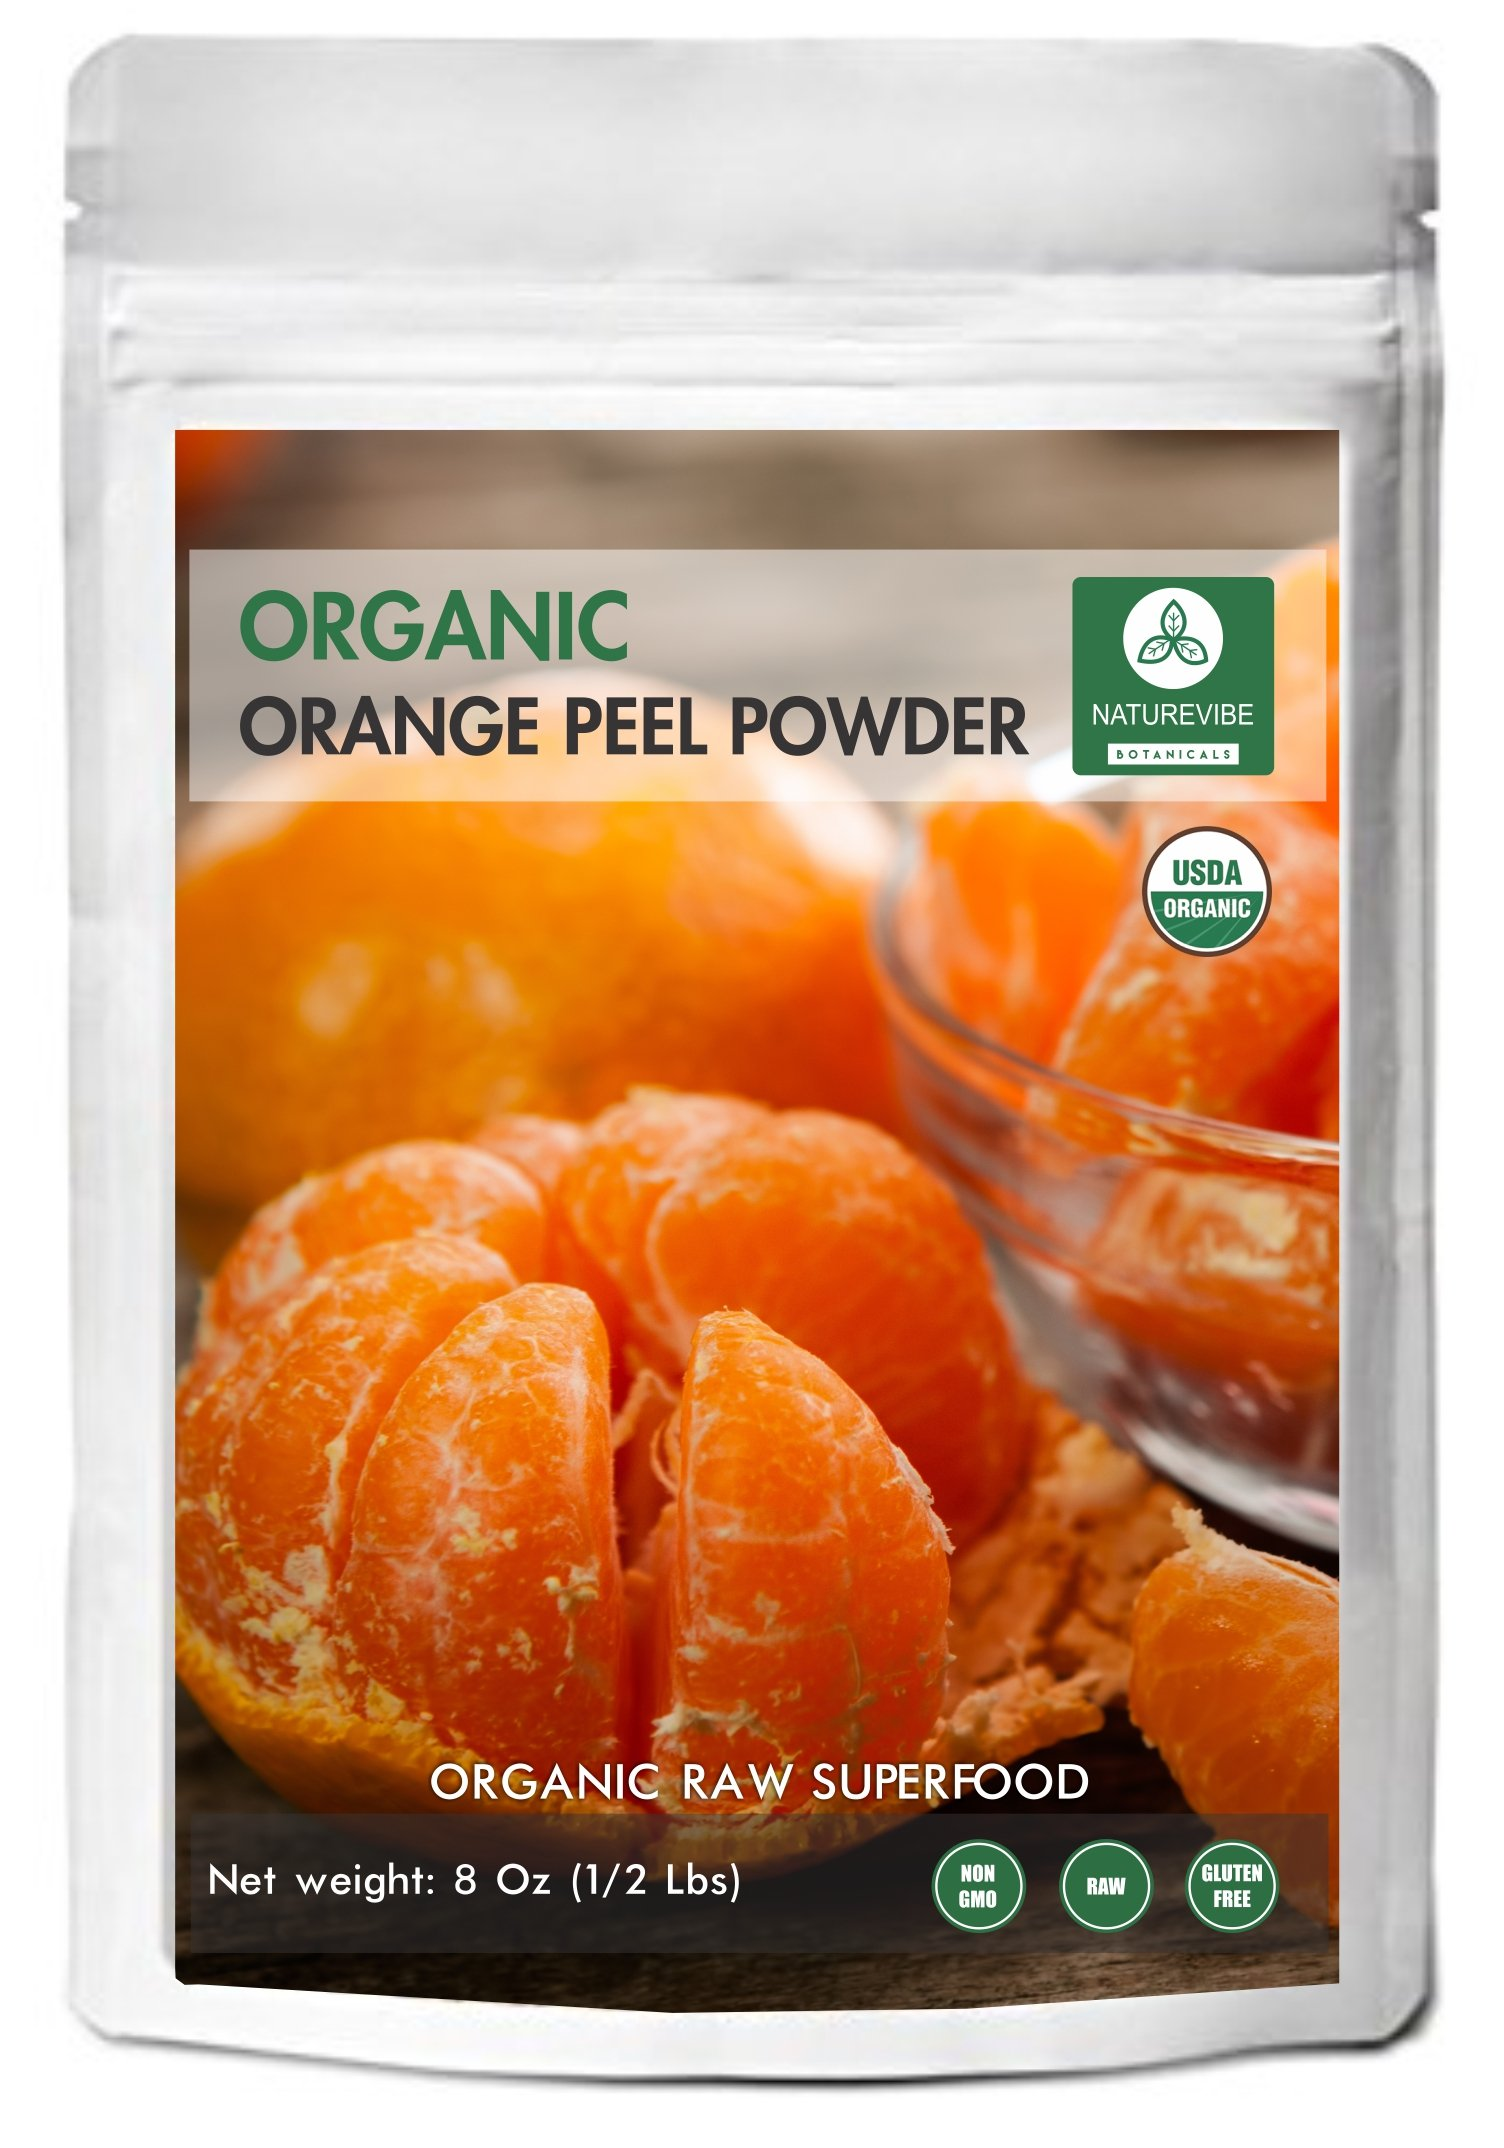 Naturevibe Botanicals Orange Peel Powder (8 Oz) | Citrus sinensis L. | Food Spice | Promotes Anti-Ageing & Skin Health